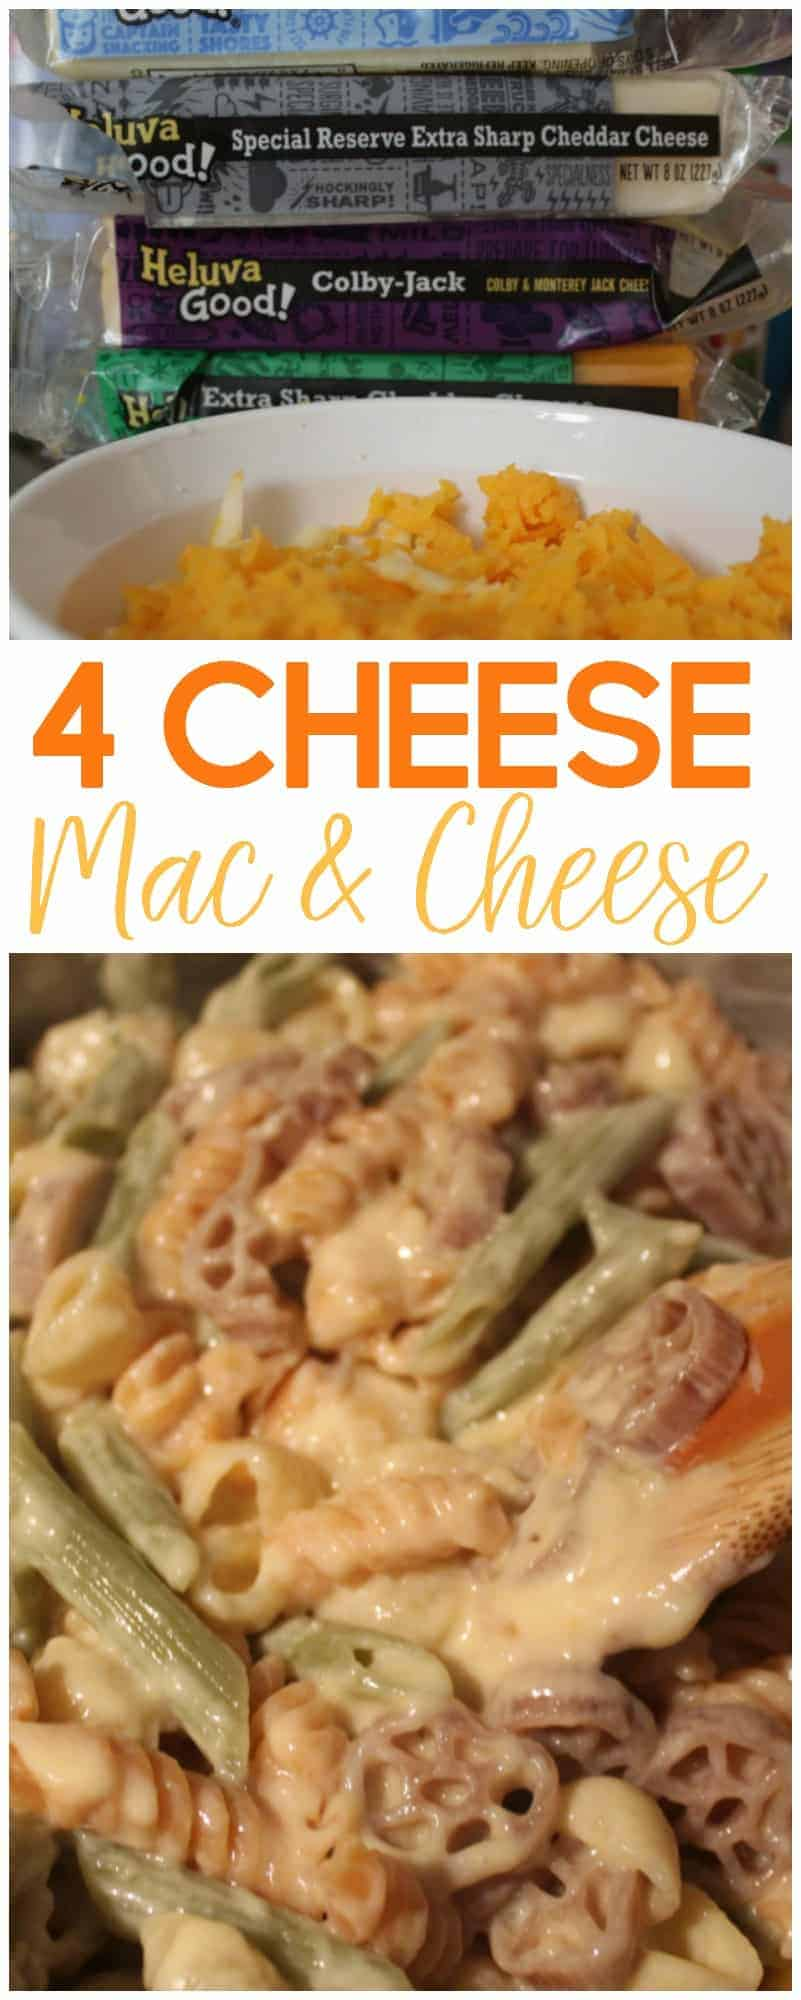 Homemade 4 Cheese Mac & Cheese on the Stovetop 6